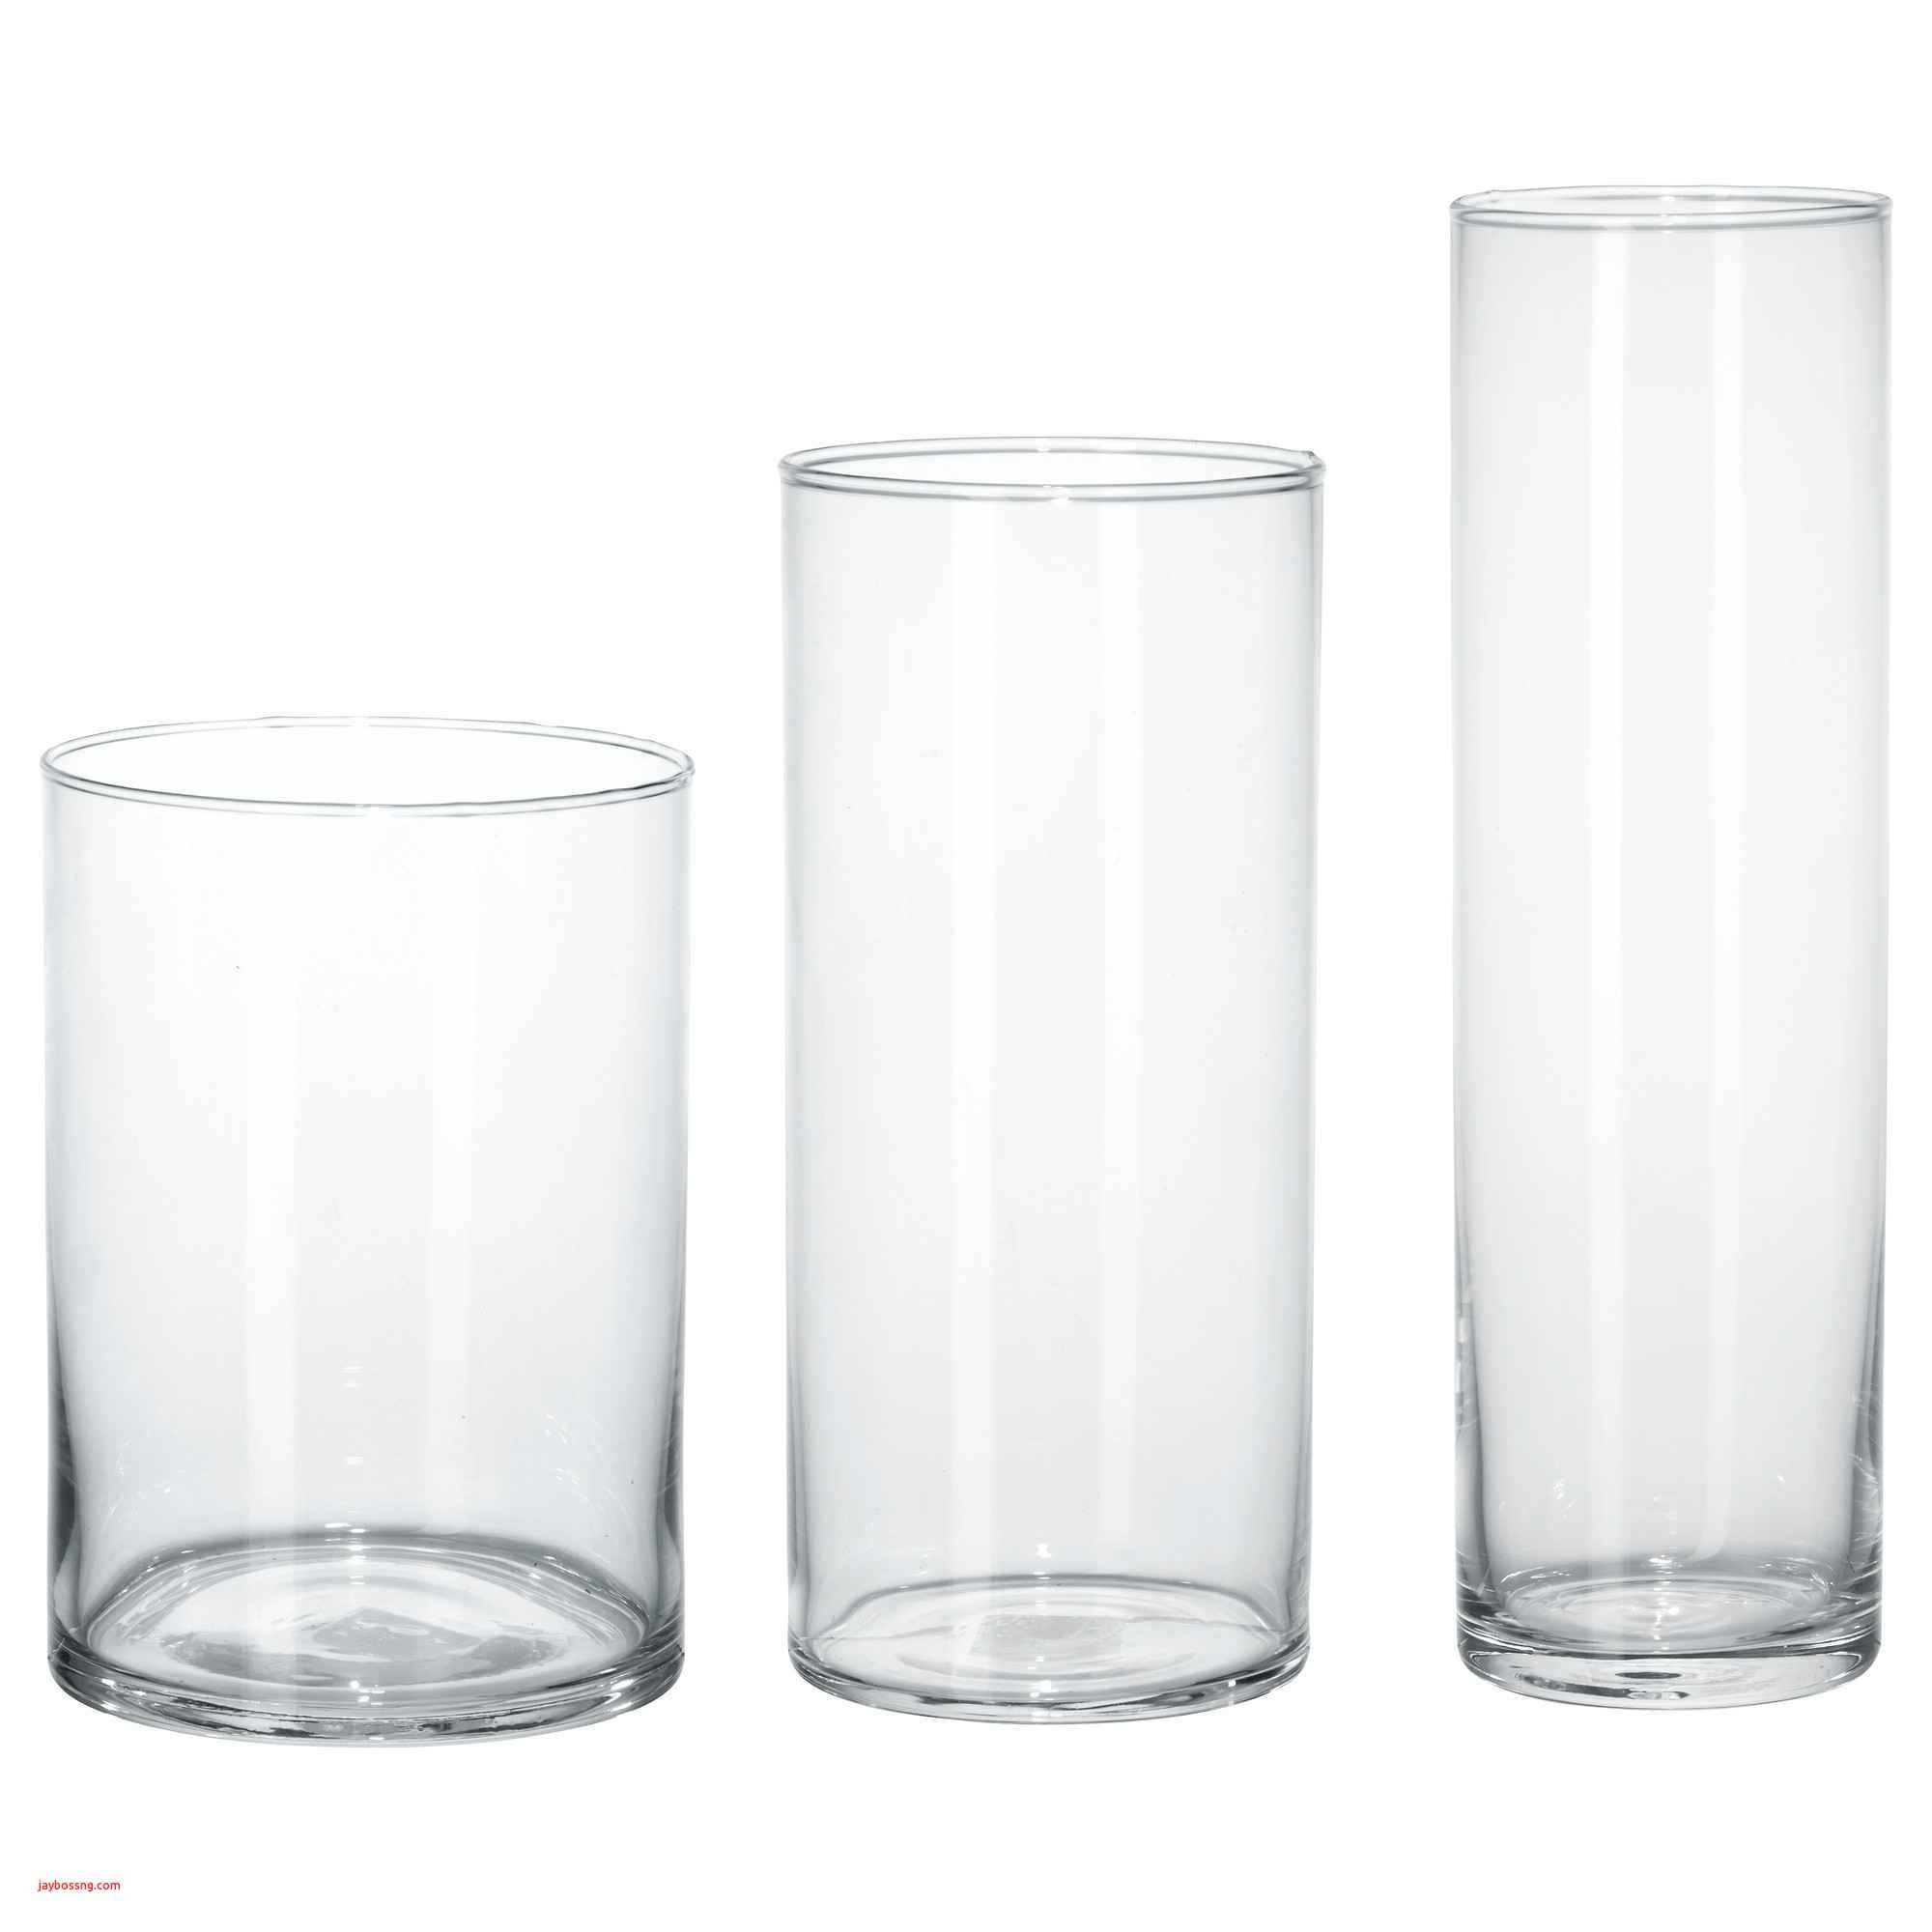 tall red vases cheap of brown glass vase fresh ikea white table created pe s5h vases ikea throughout brown glass vase fresh ikea white table created pe s5h vases ikea vase i 0d bladet